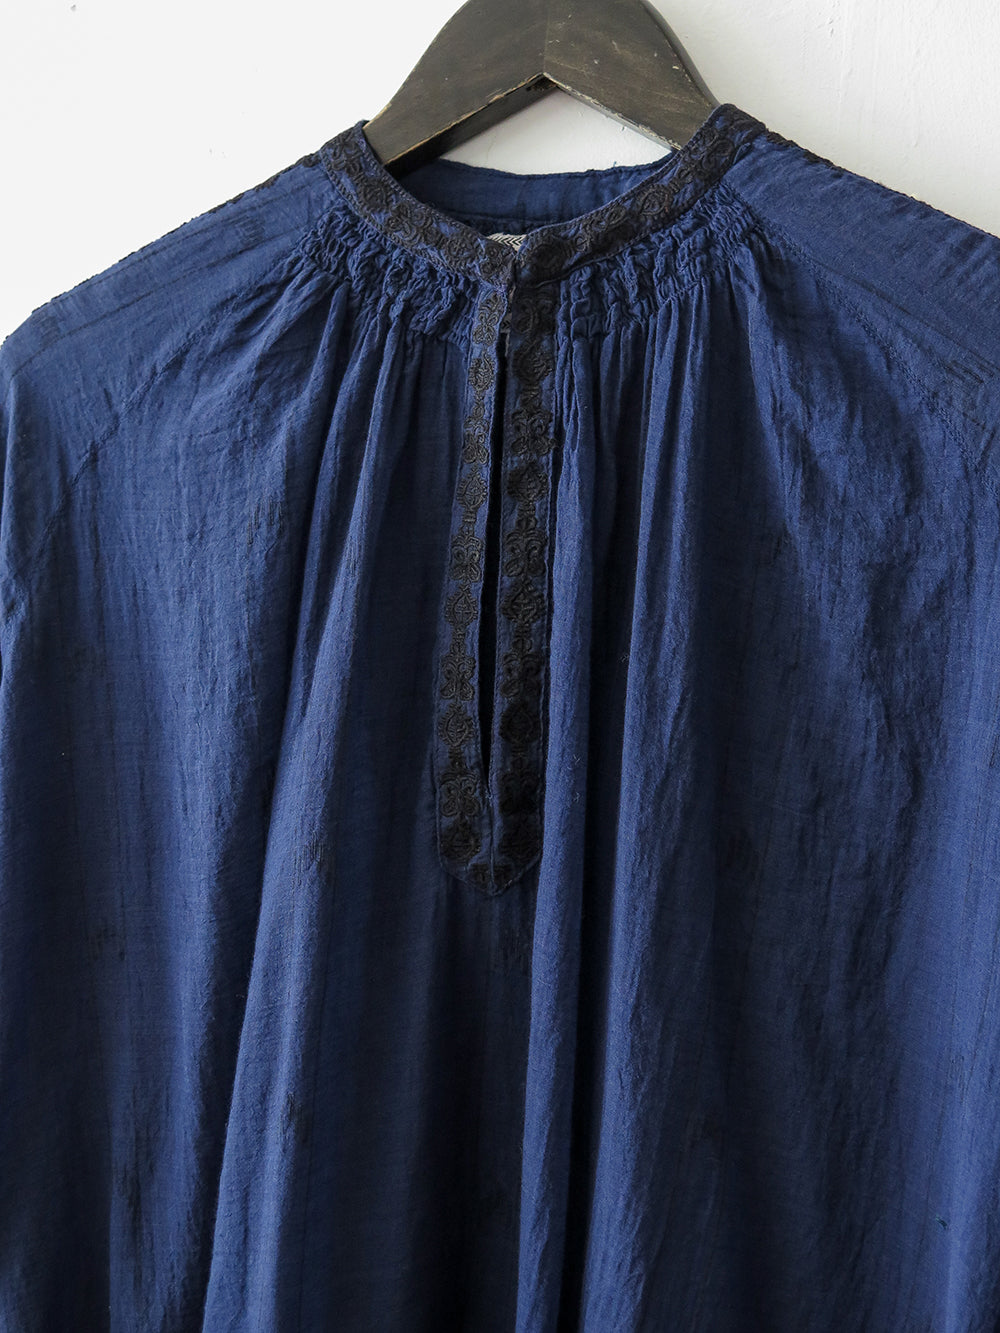 bsbee bastia dress in navy